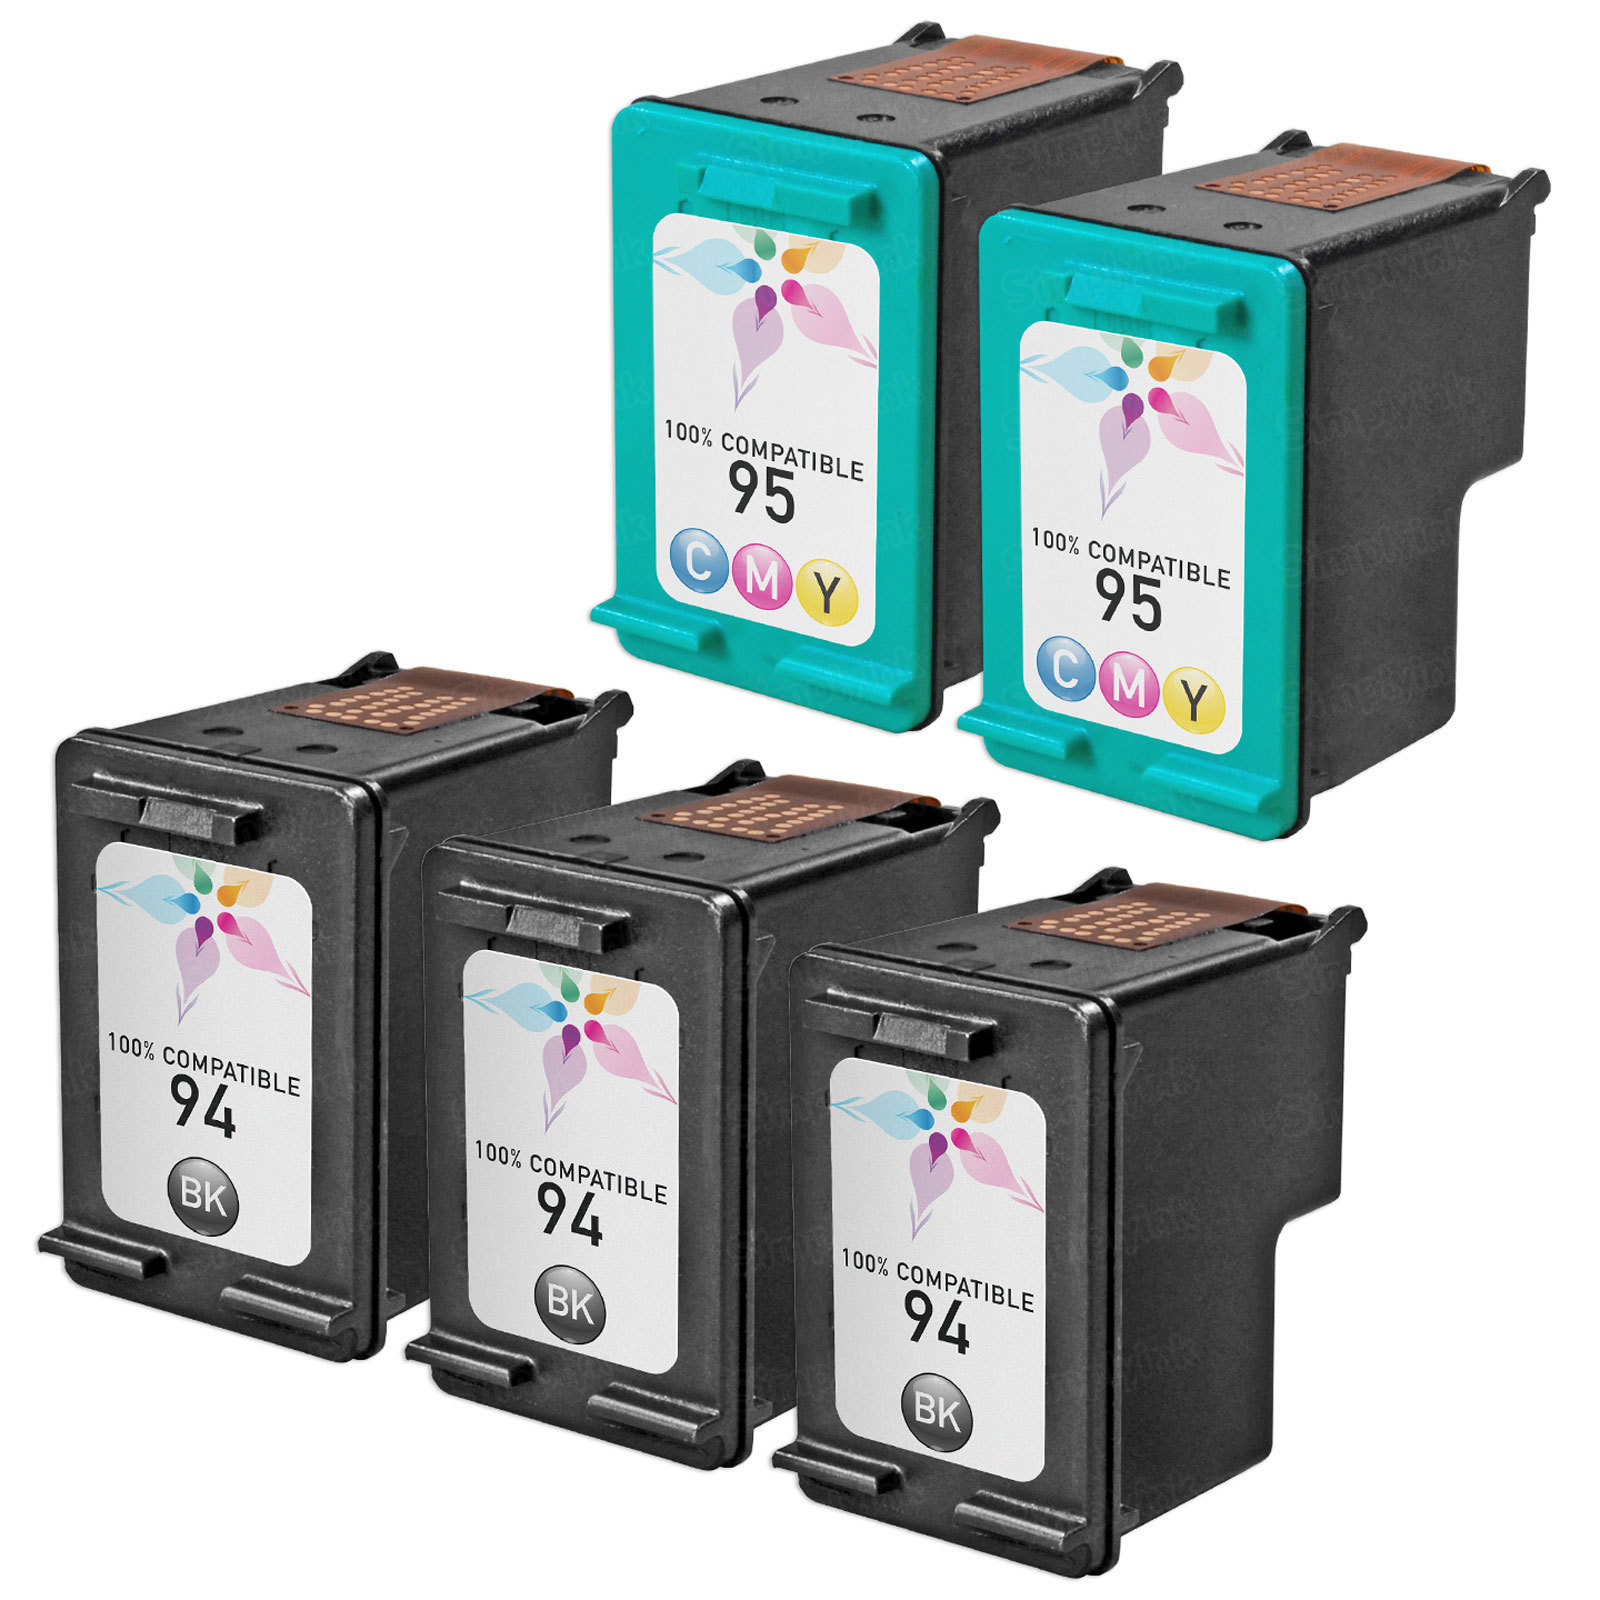 Remanufactured Bulk Set of 5 Ink Cartridges to Replace HP 94 & HP 95 (3 BK, 2 CLR)